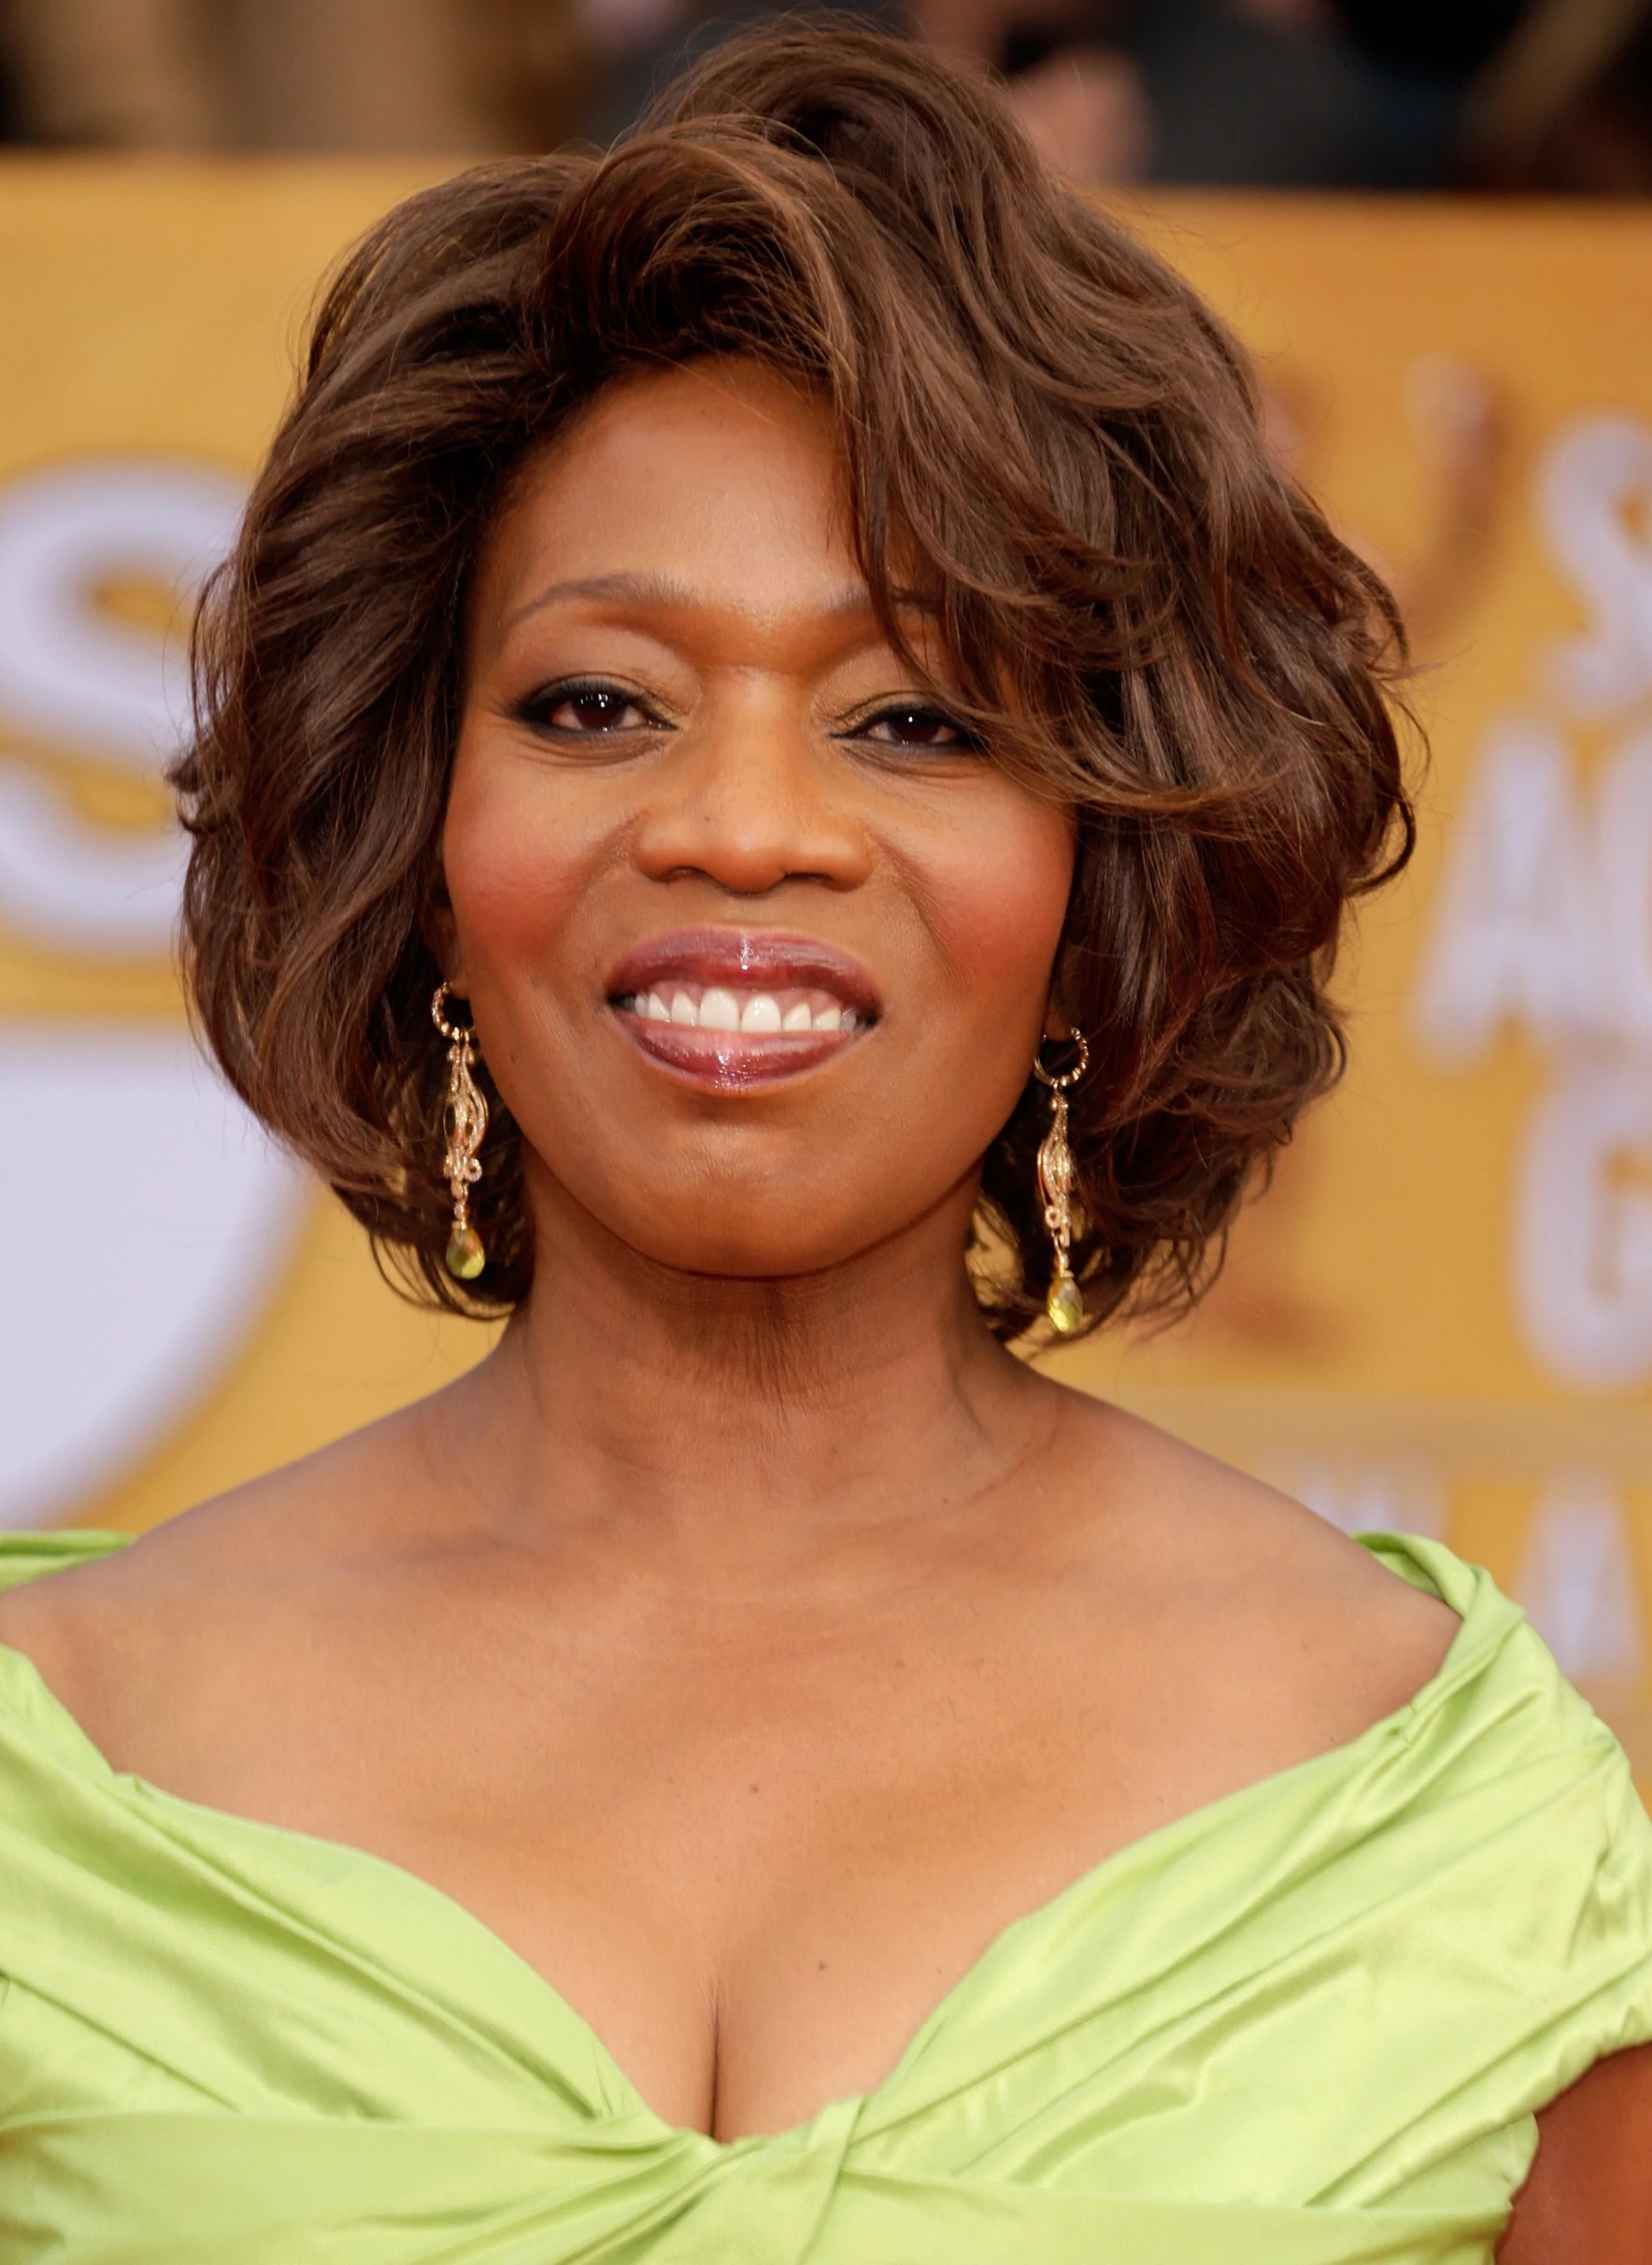 alfre woodard viola davisalfre woodard husband, alfre woodard, alfre woodard daughter, alfre woodard family, alfre woodard imdb, alfre woodard net worth, alfre woodard viola davis, alfre woodard and roderick spencer, alfre woodard age, alfre woodard desperate housewives, alfre woodard true blood, alfre woodard wiki, alfre woodard grey's anatomy, alfre woodard son, alfre woodard family photos, alfre woodard net worth 2014, alfre woodard movies list